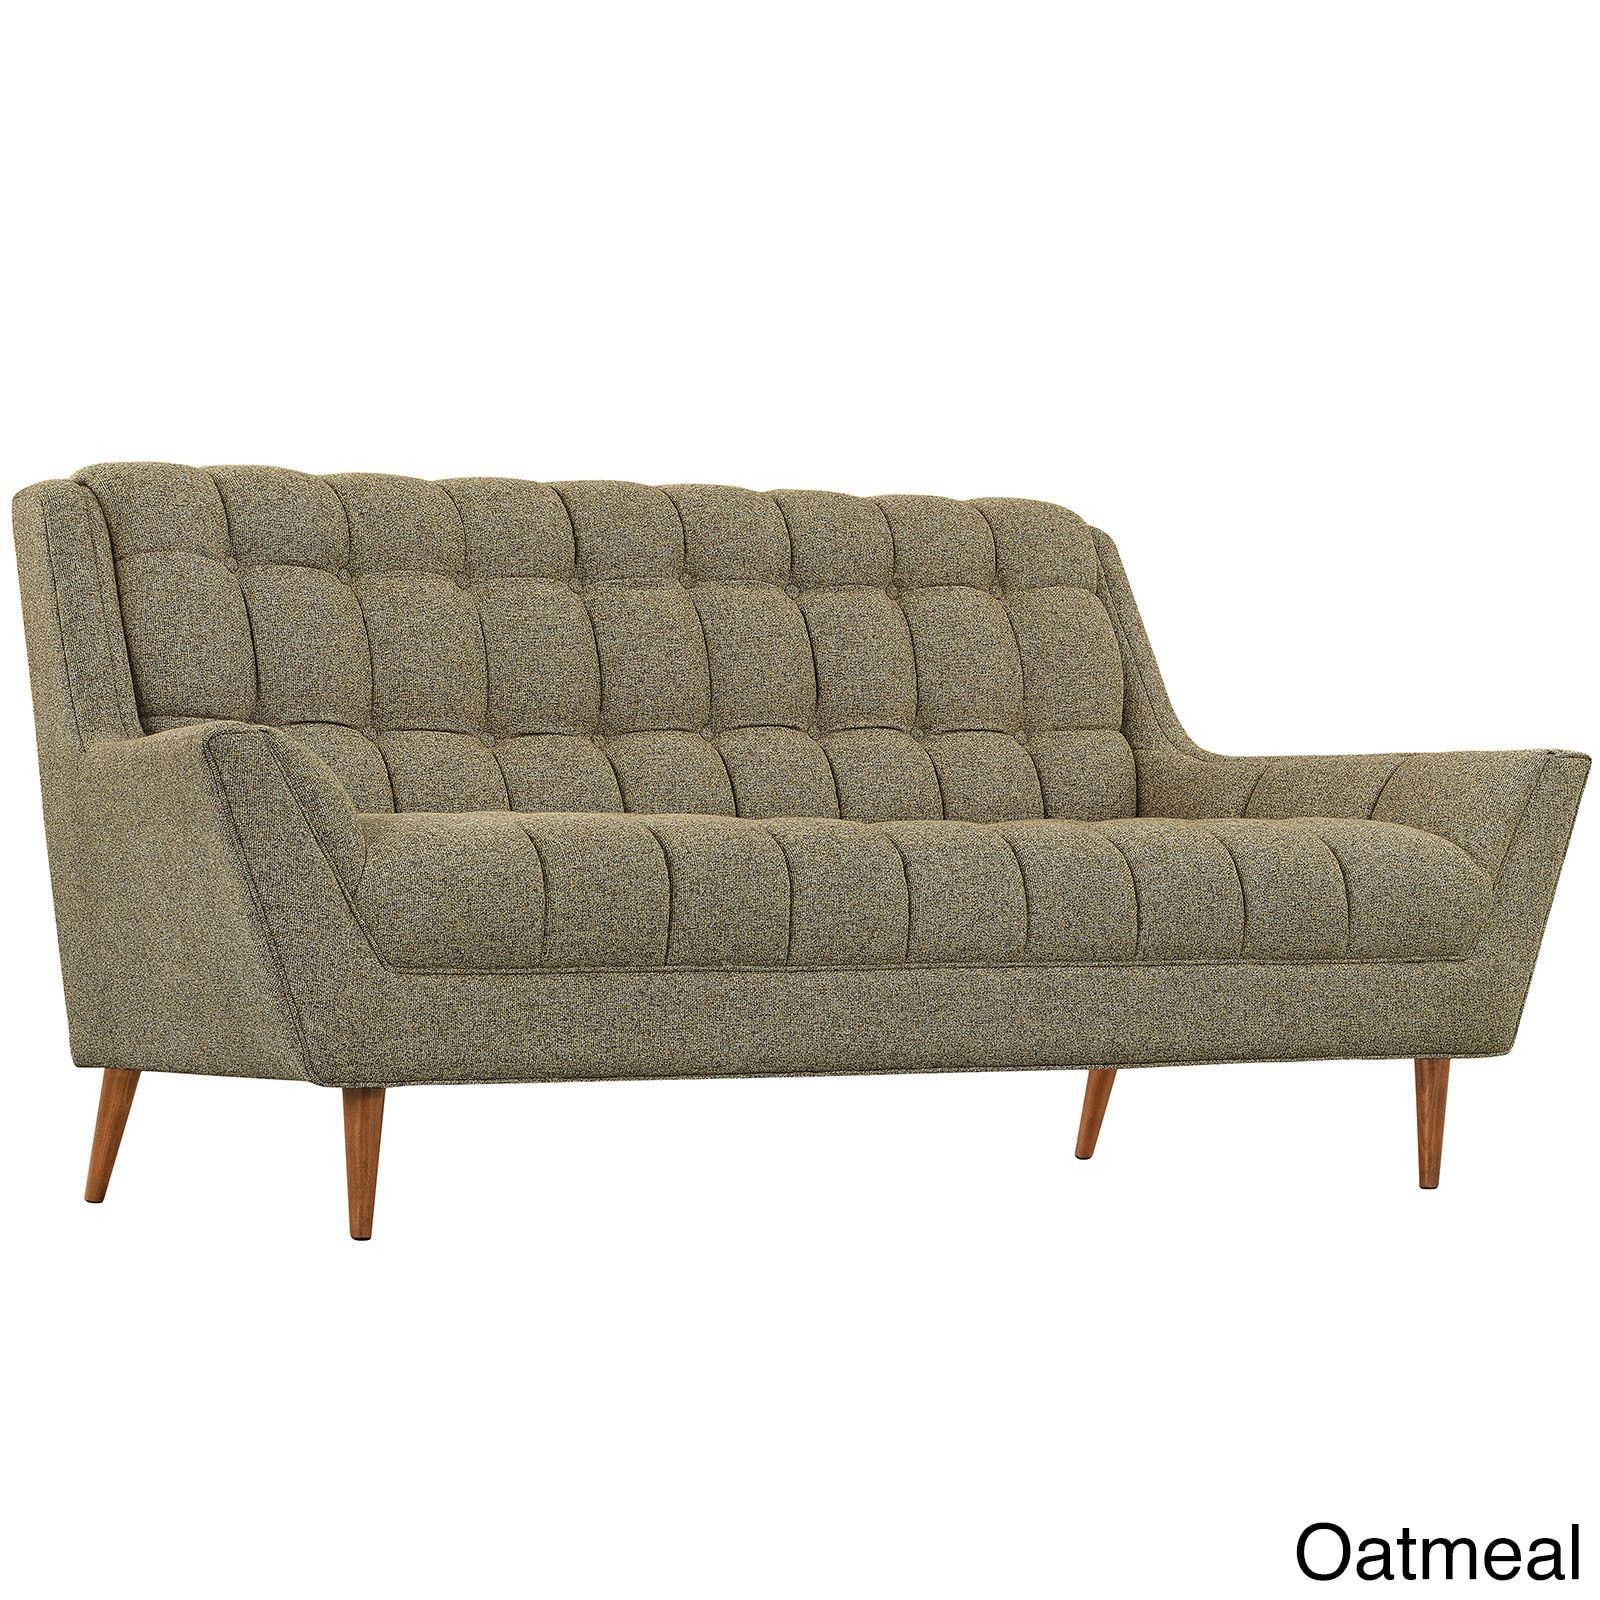 Admirable Modway Response Fabric Mid Century Tufted Loveseat Oatmeal Lamtechconsult Wood Chair Design Ideas Lamtechconsultcom